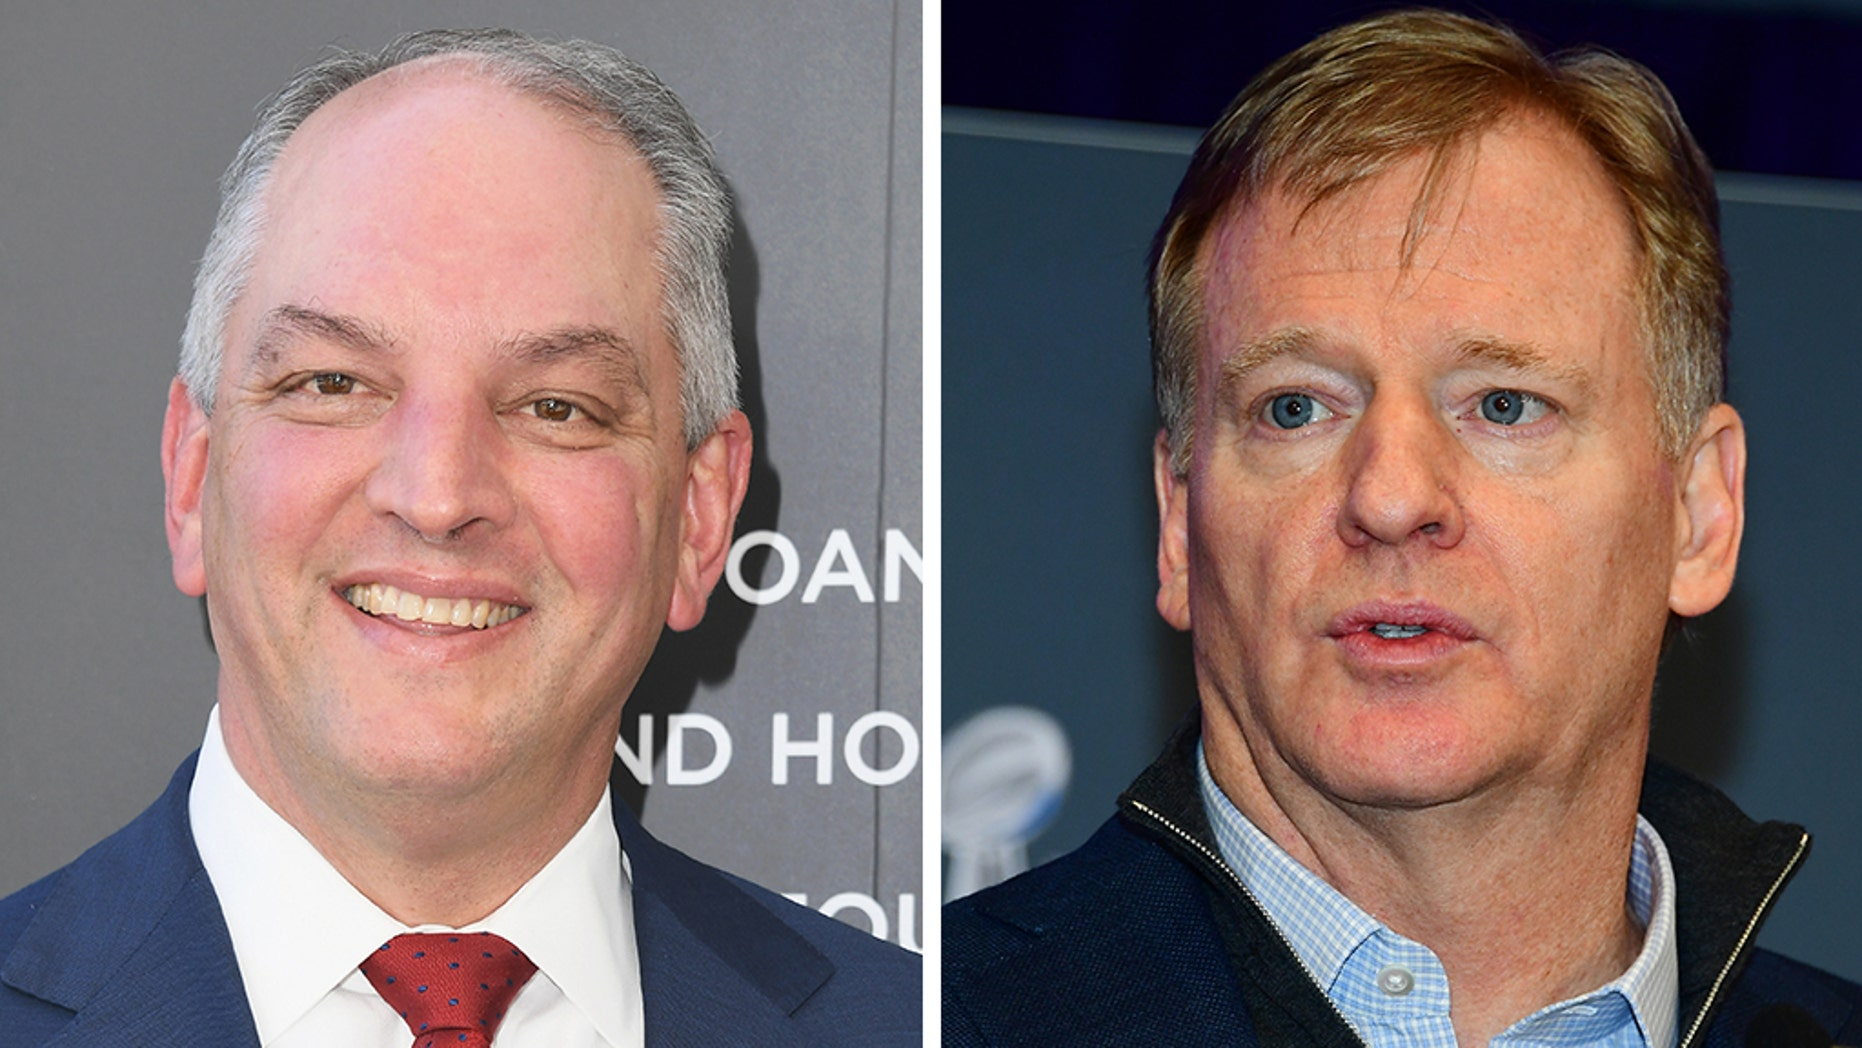 Louisiana Gov. John Bel Edwards, left, and NFL Commissioner Roger Goodell